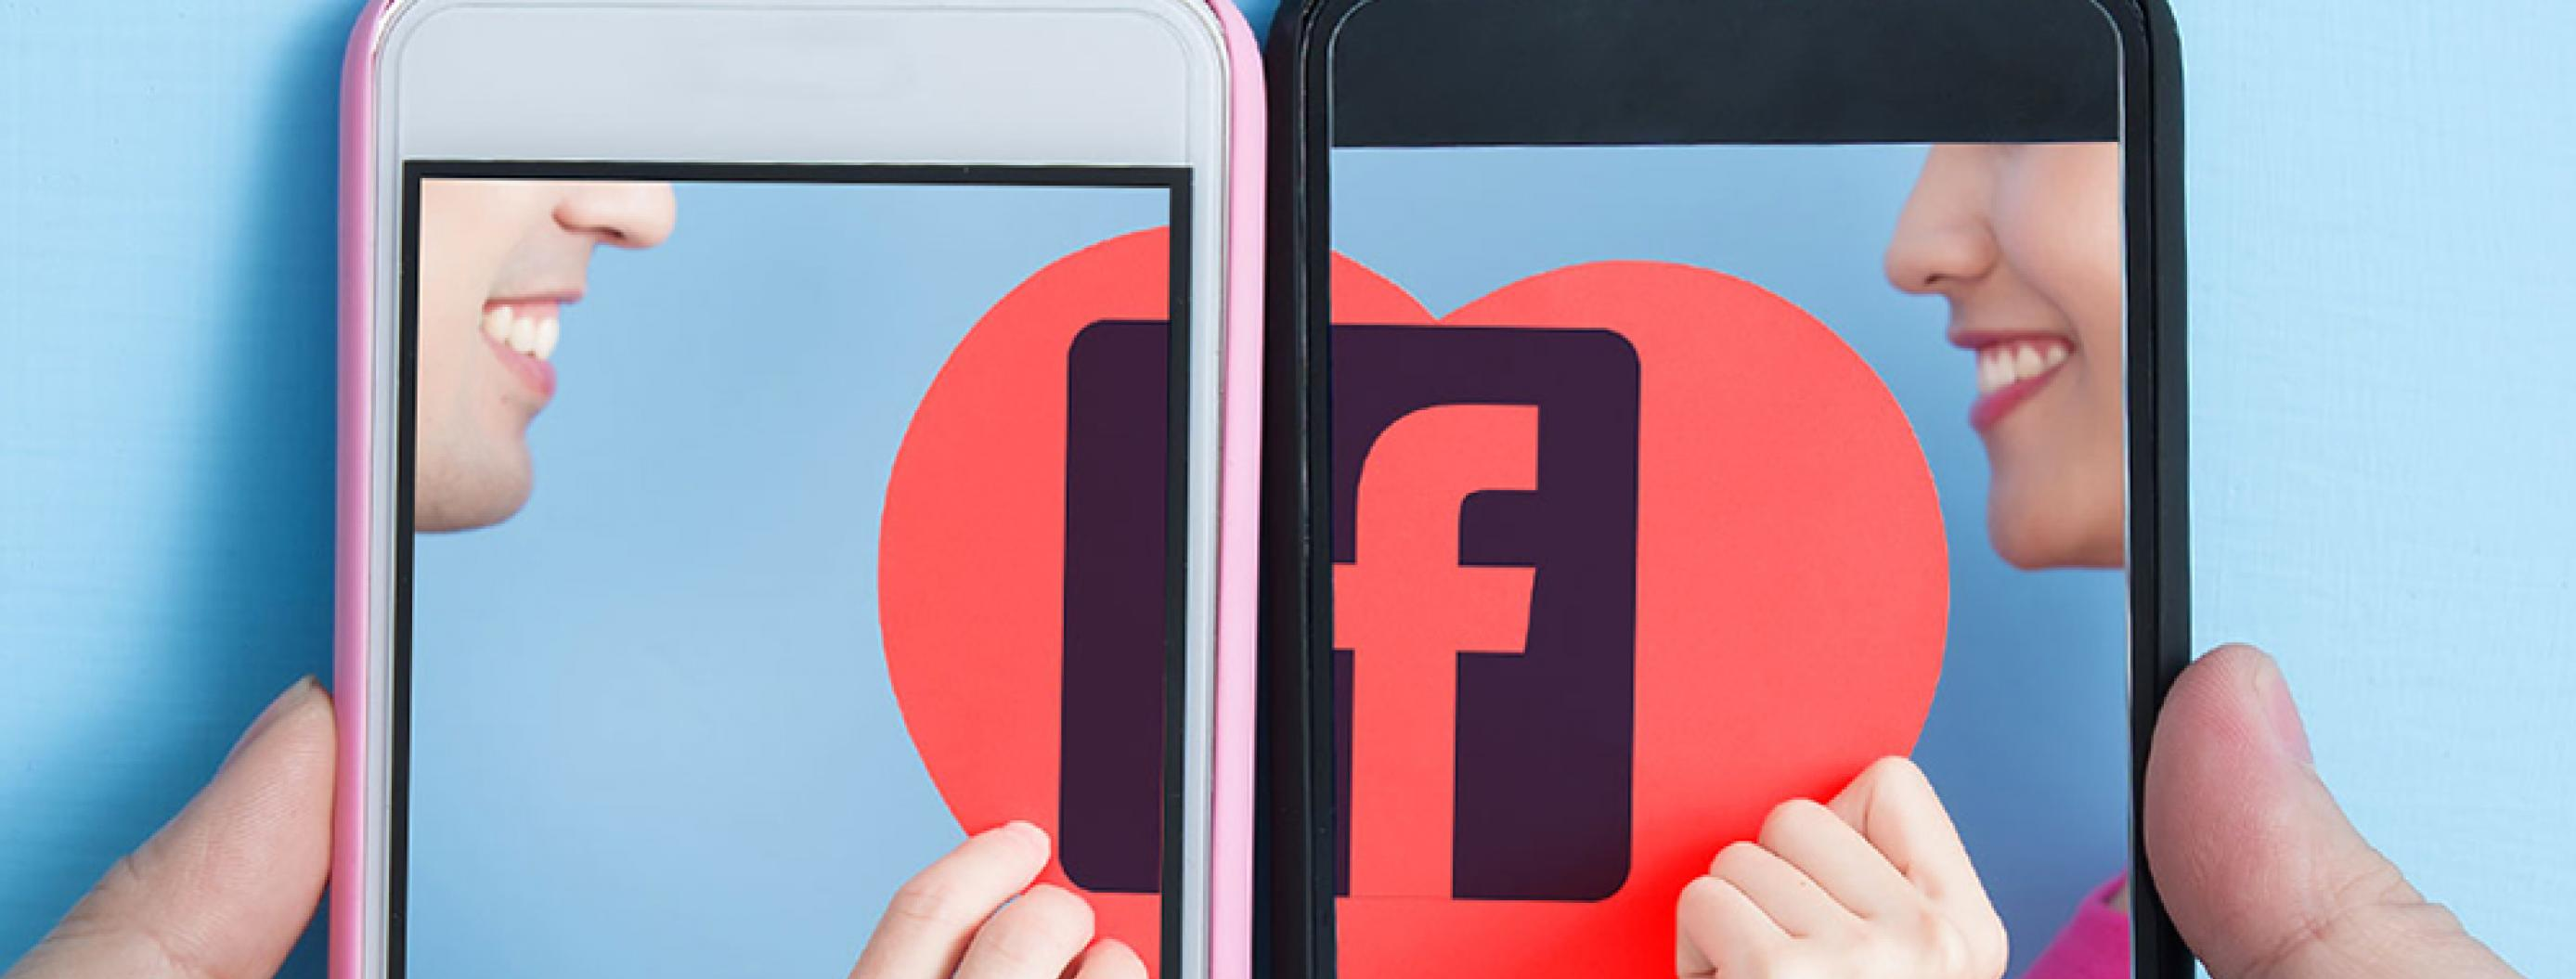 Facebook Has Started Testing Its Own Dating App